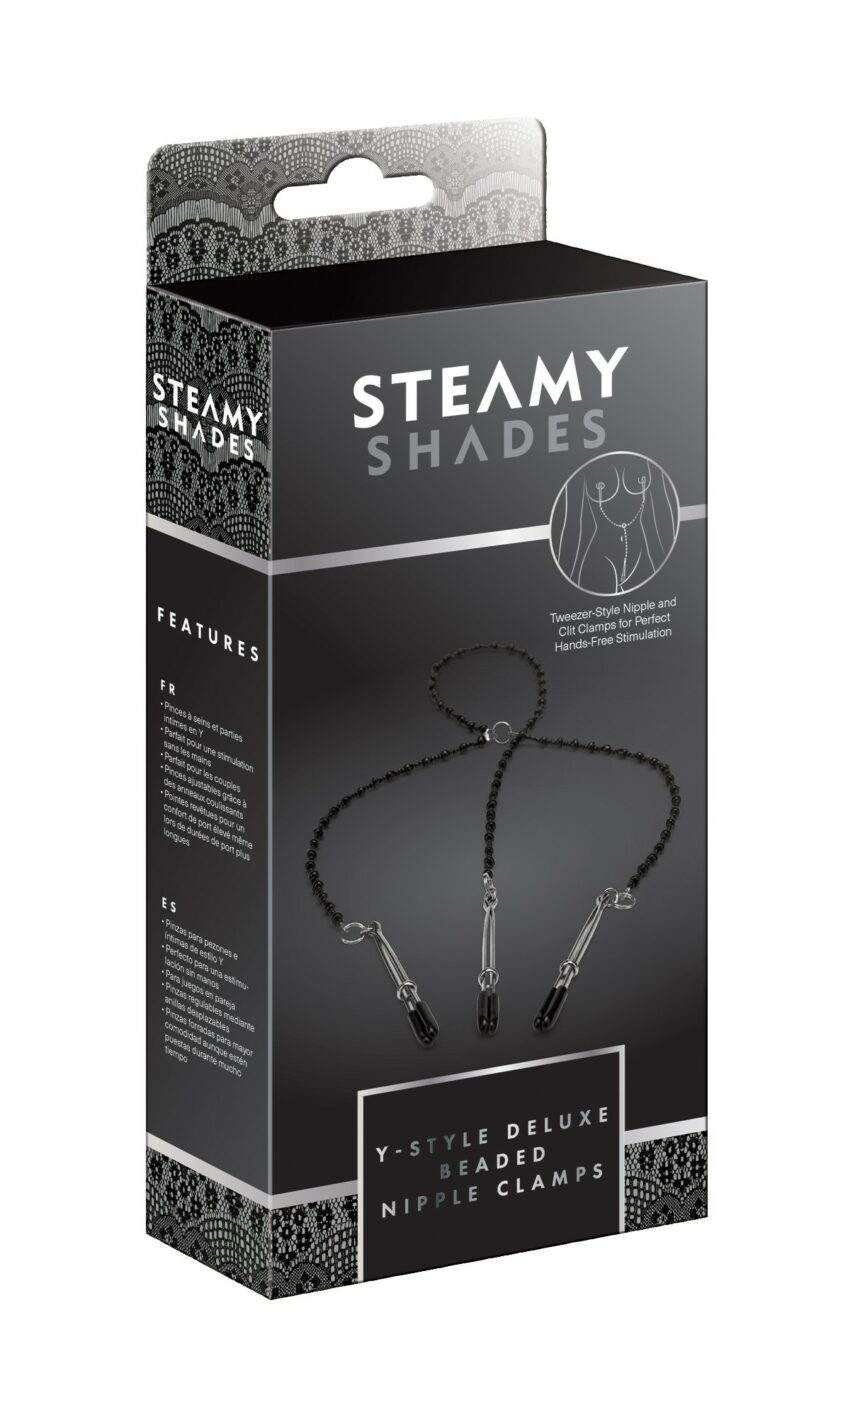 Steamy Shades Y-Style Beaded Nipple Clamp